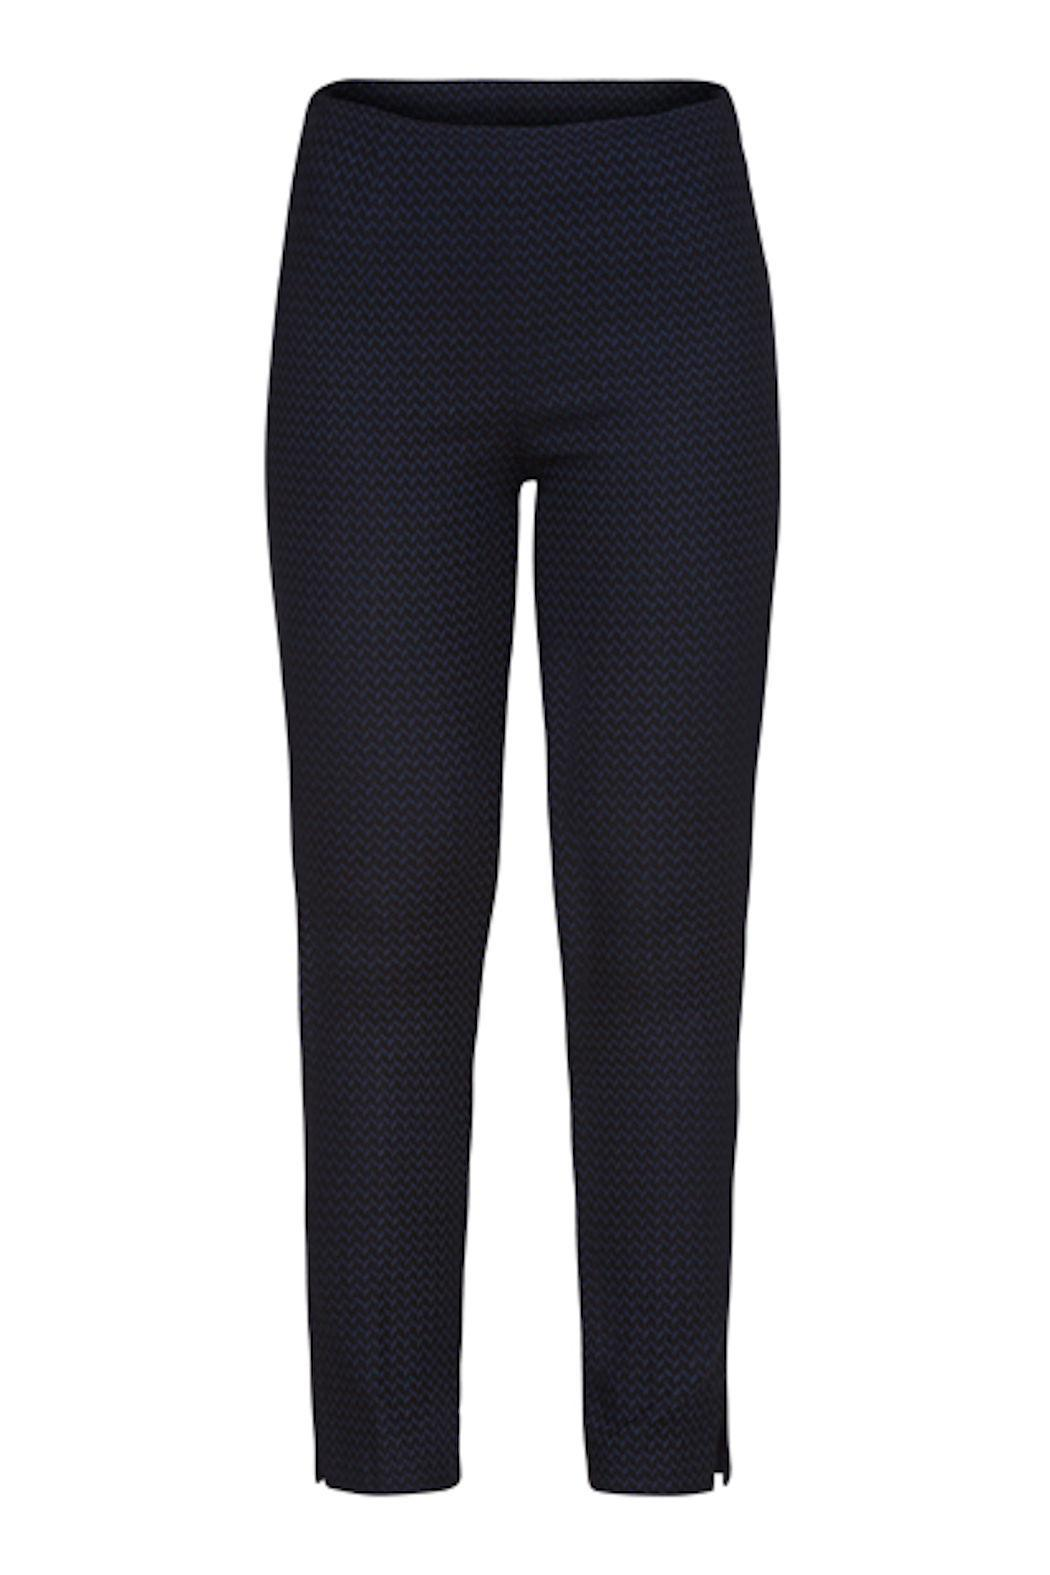 Tribal Blue Black Pant - Front Cropped Image